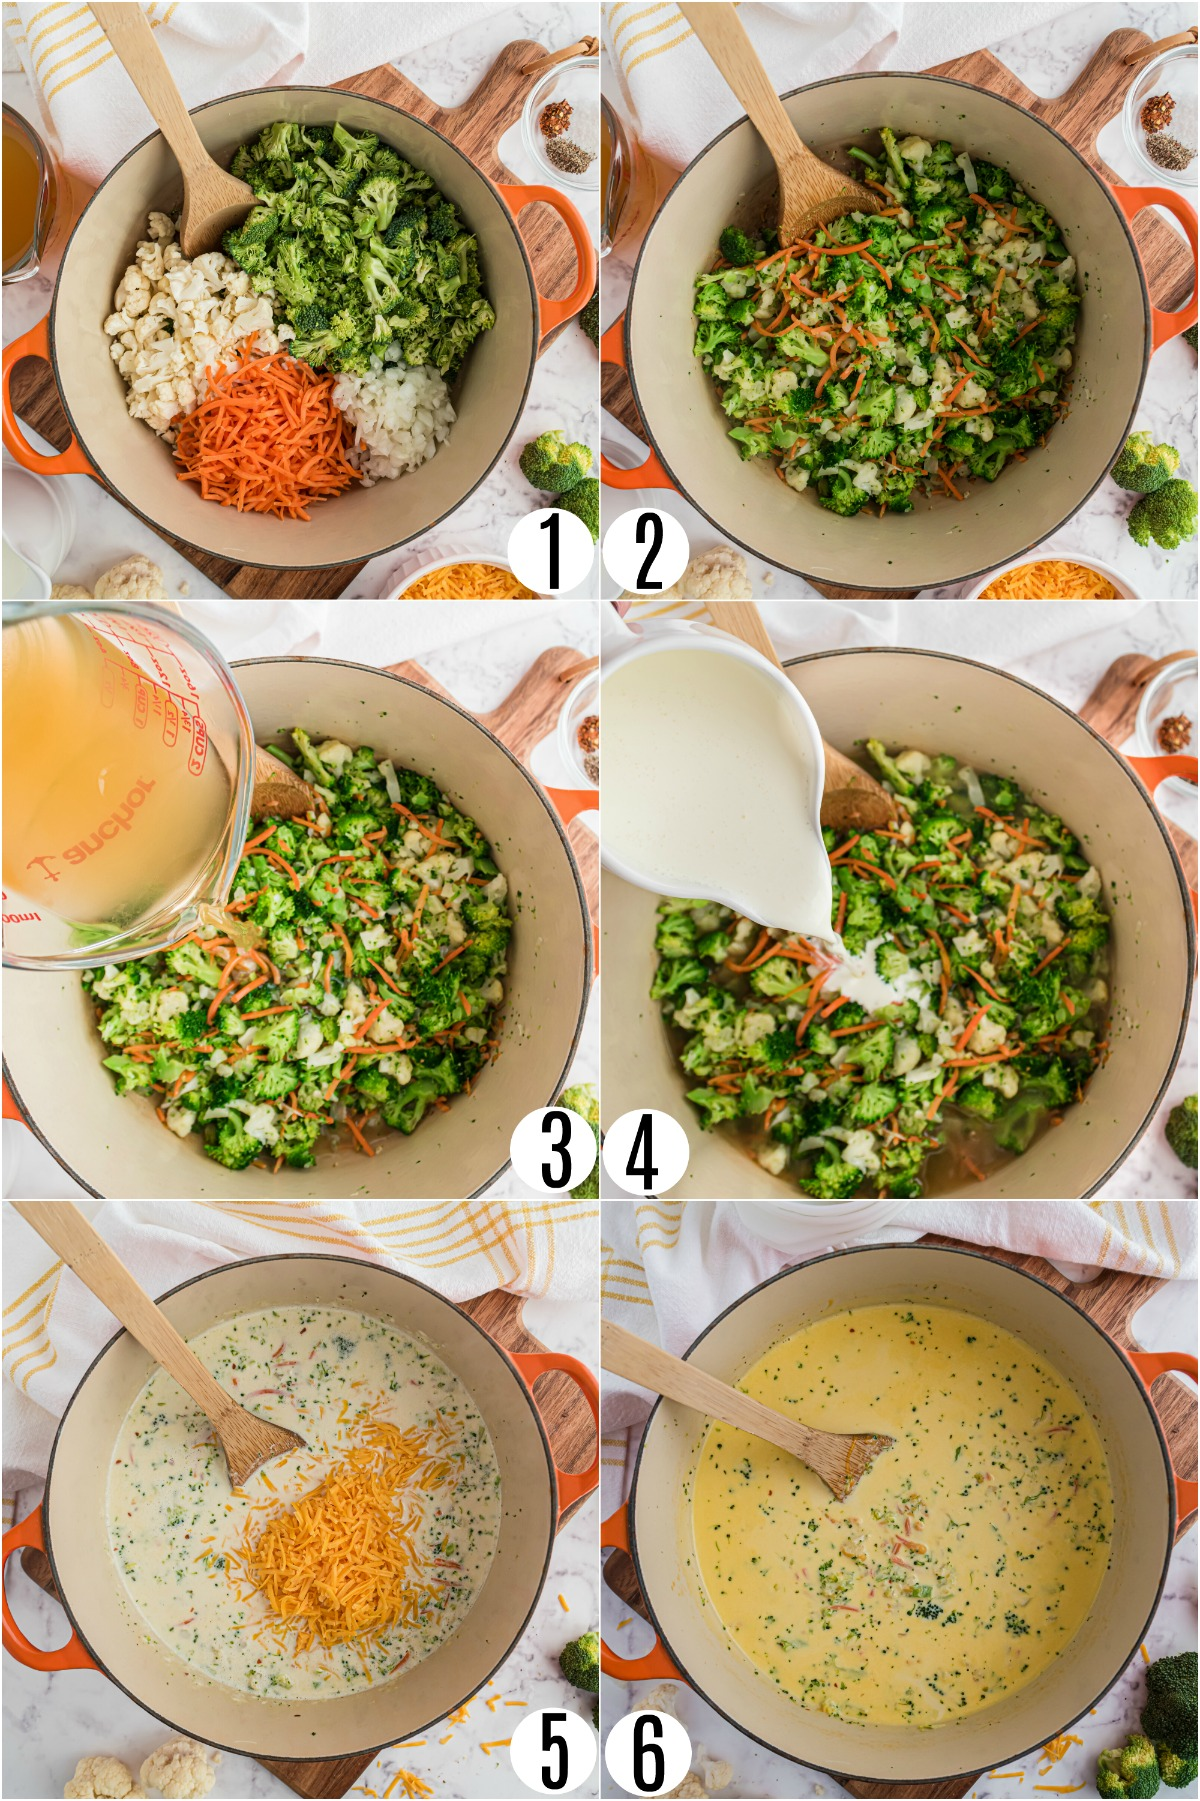 Step by step photos showing how to make low carb broccoli cheese soup.